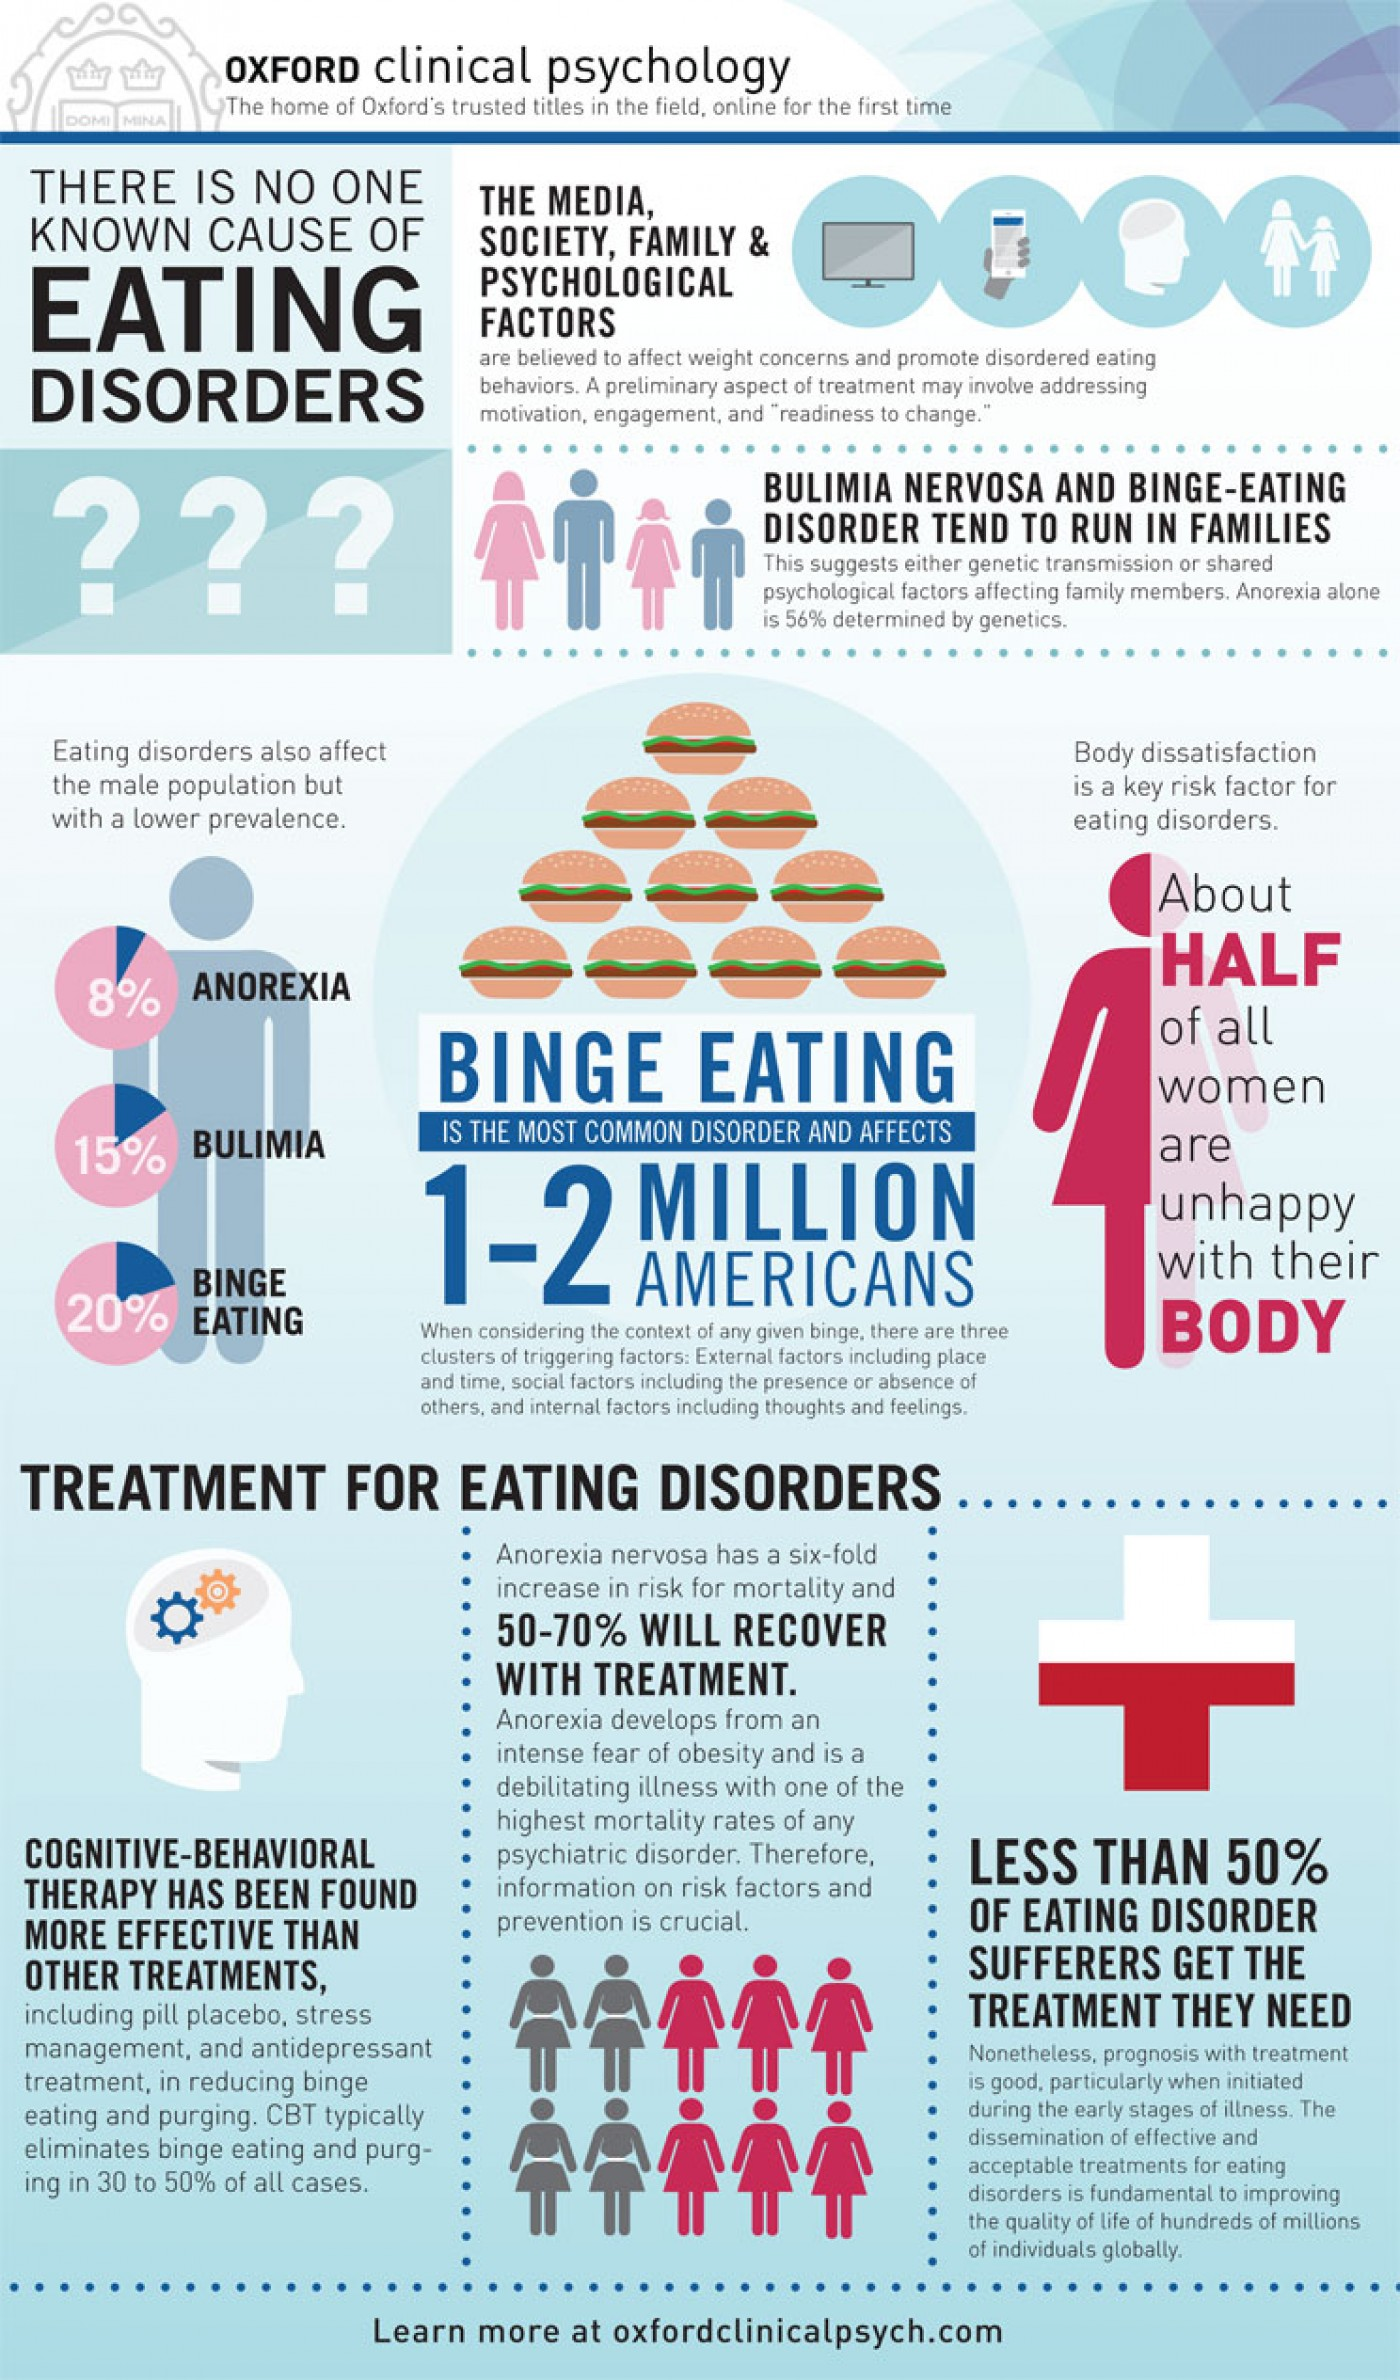 002 Research Paper Oup Ocp Infographic 03 Psychological On Eating Imposing Disorders Psychology Topics 1400